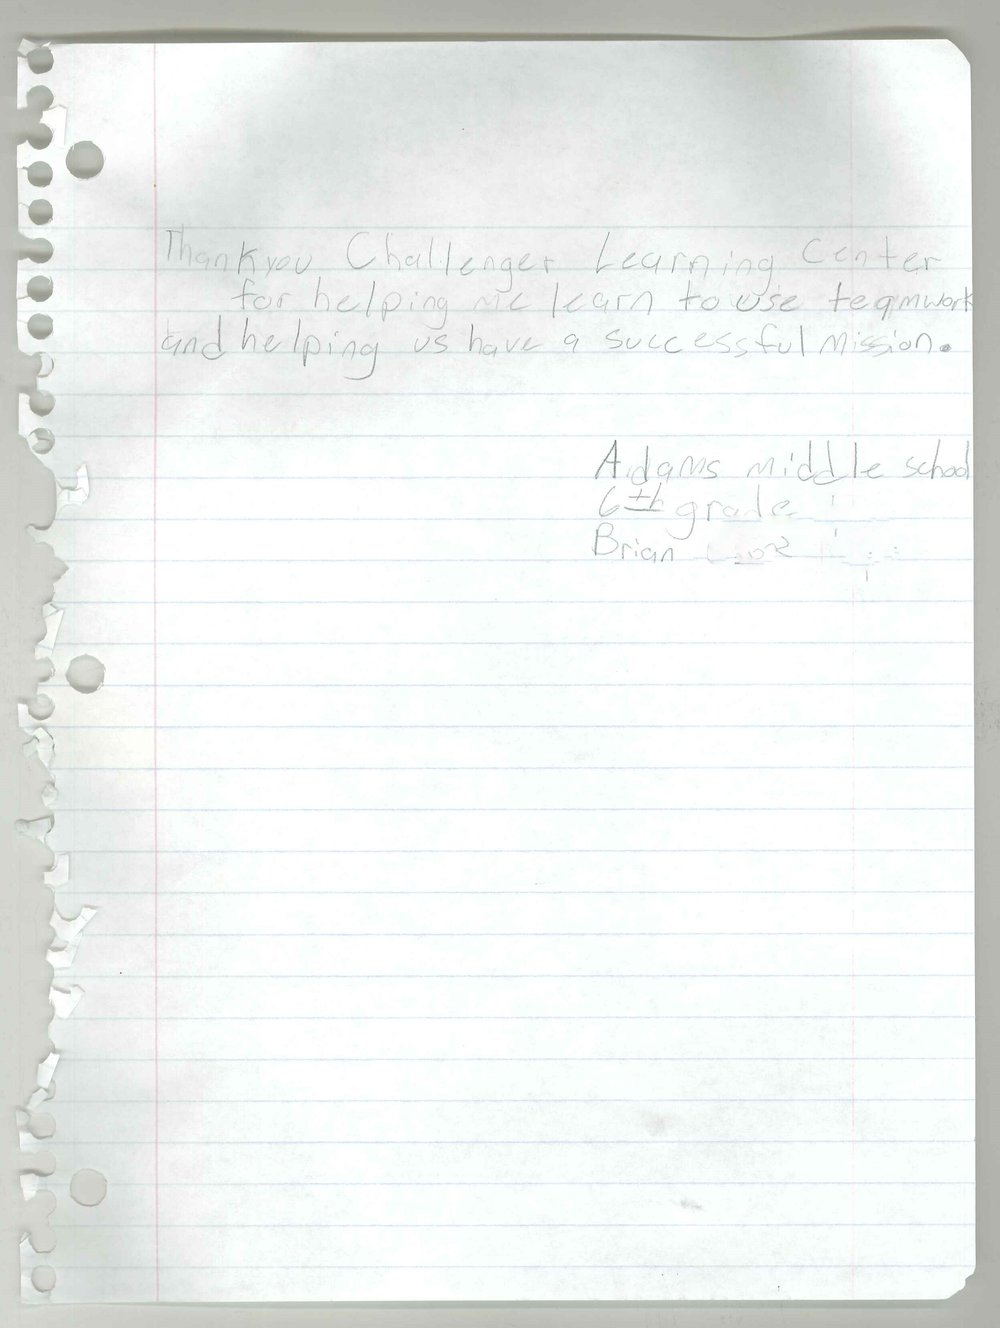 2003 AMS 6th grade thank you letters 3.jpg